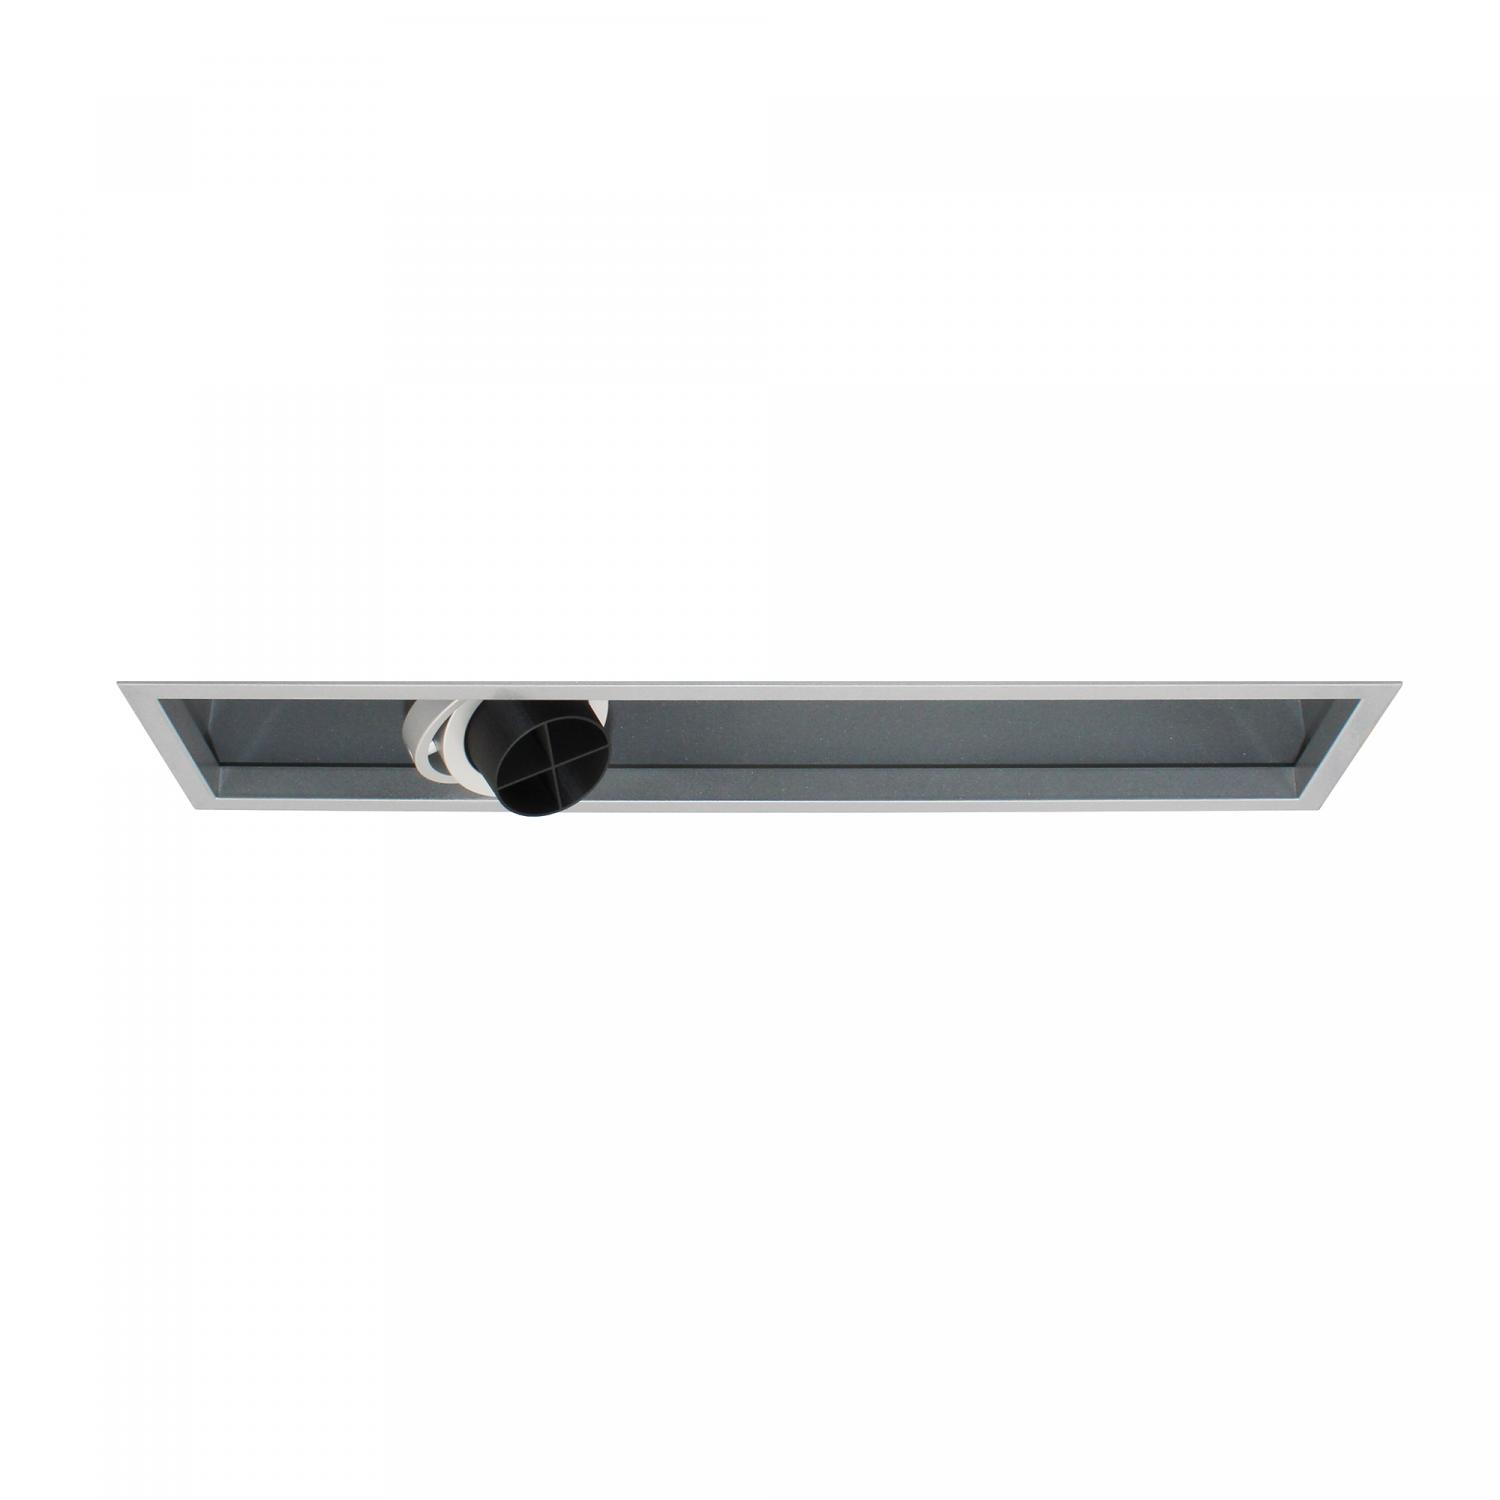 afb.rail-liteiiceilingrecessed-